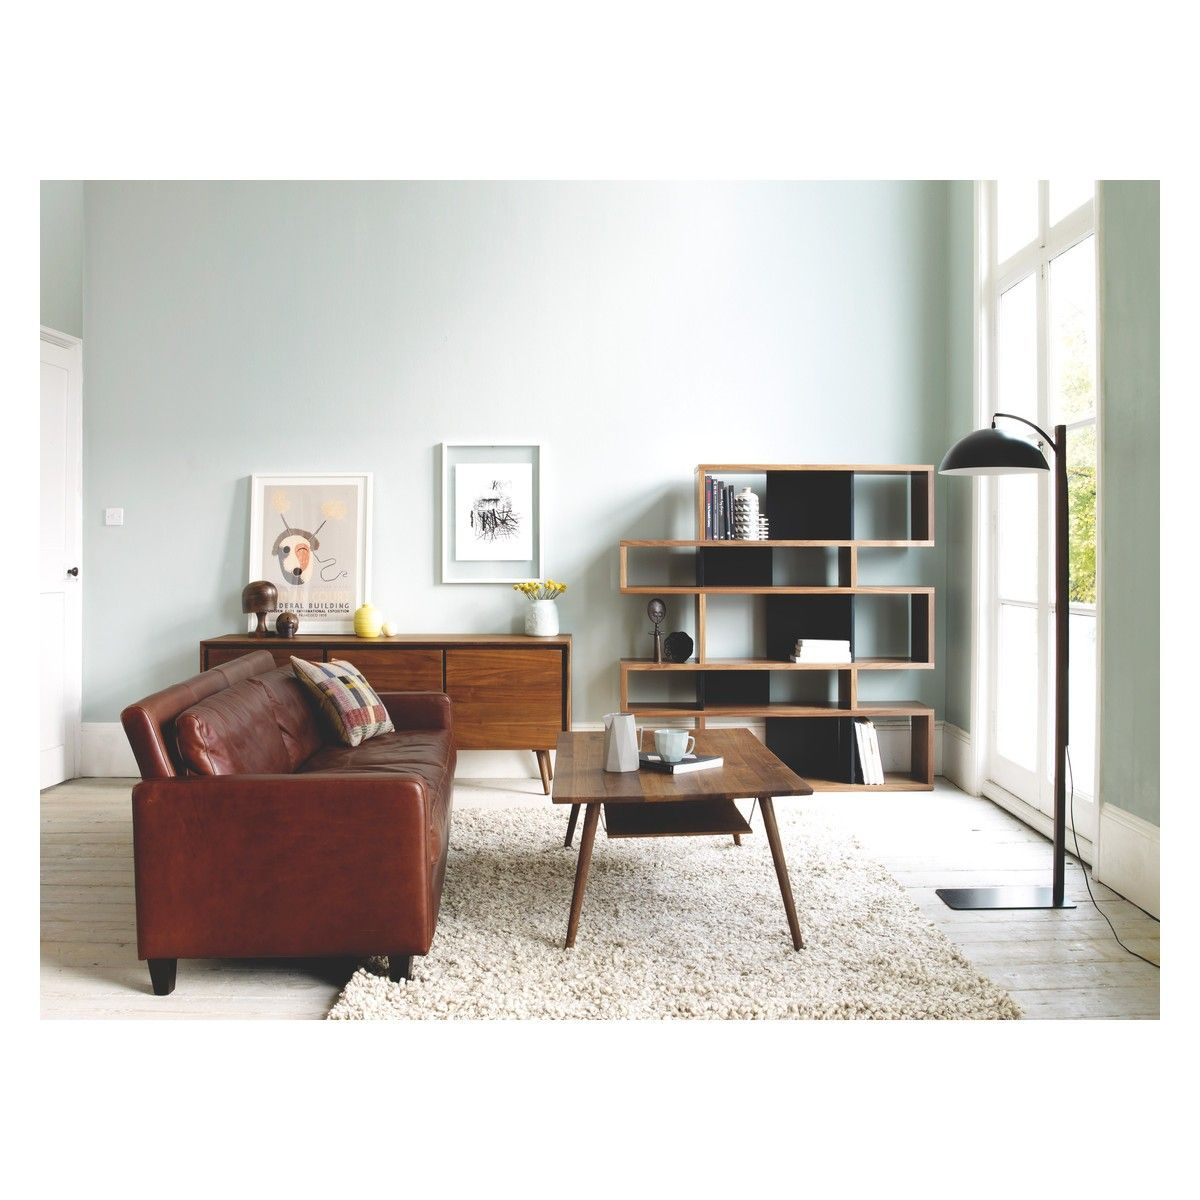 1000 Images About Rugs On Pinterest 2 Seater Sofa Tan Leather And Habitats